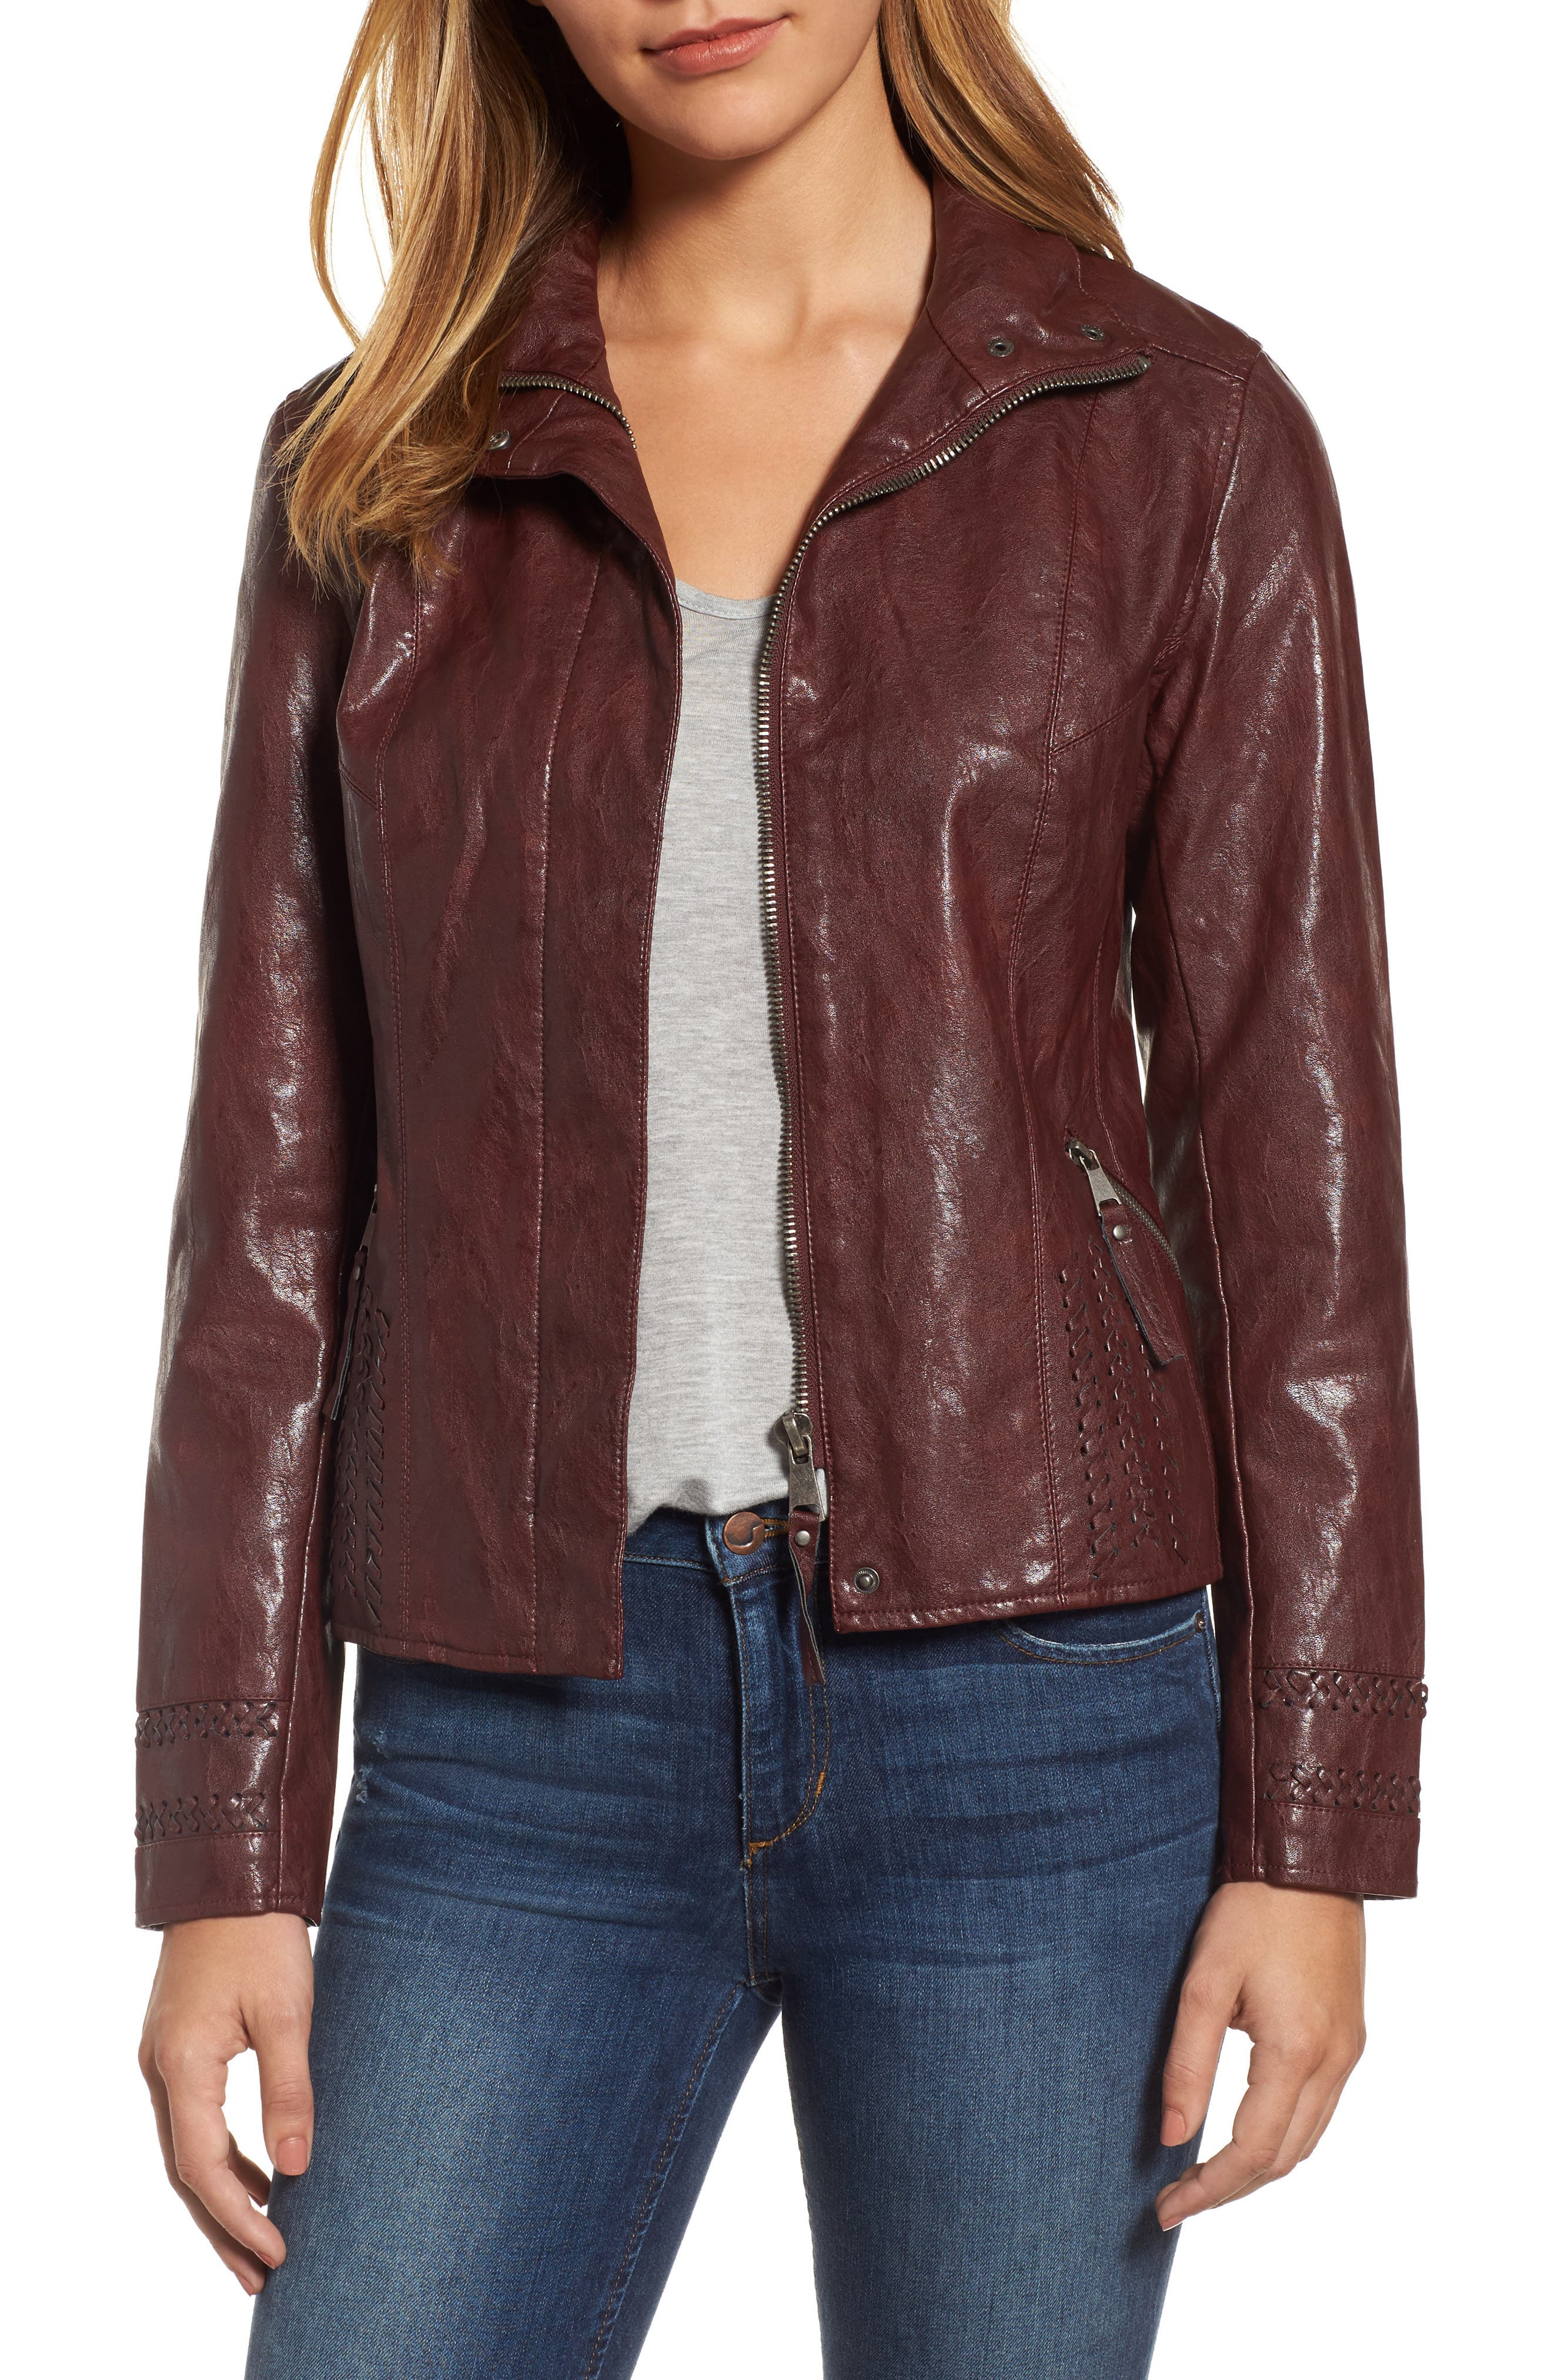 KUT from the Kloth Brittney Faux Leather Jacket